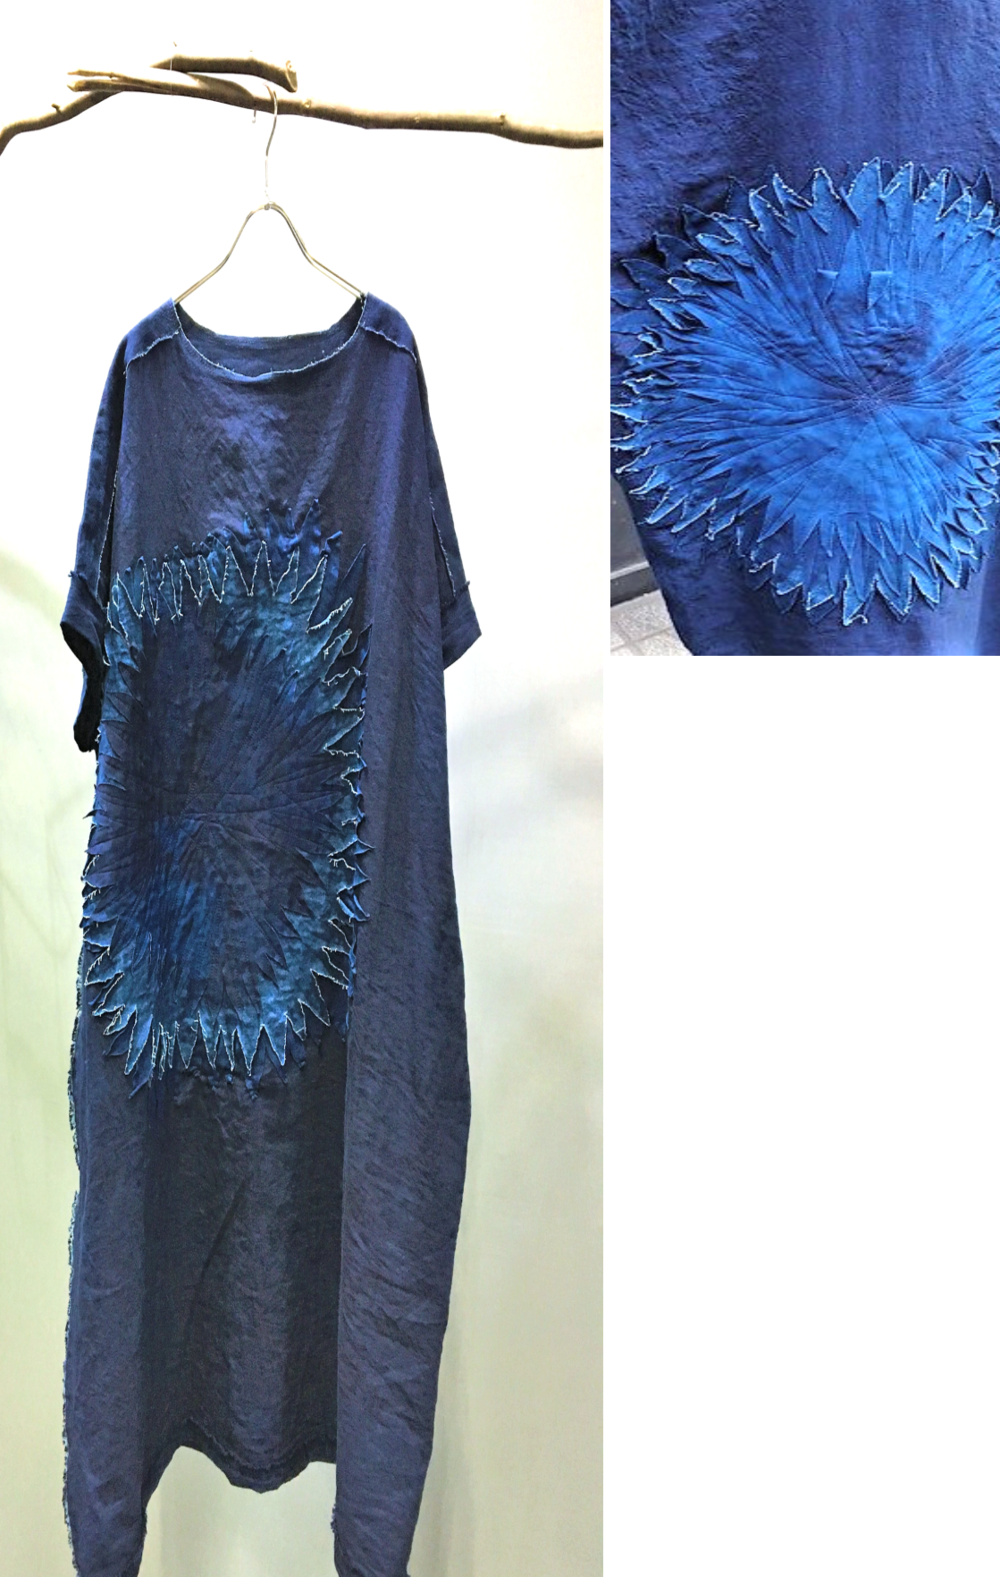 Natural Indigo Dye Linen Dress - Hand dye with Aizome